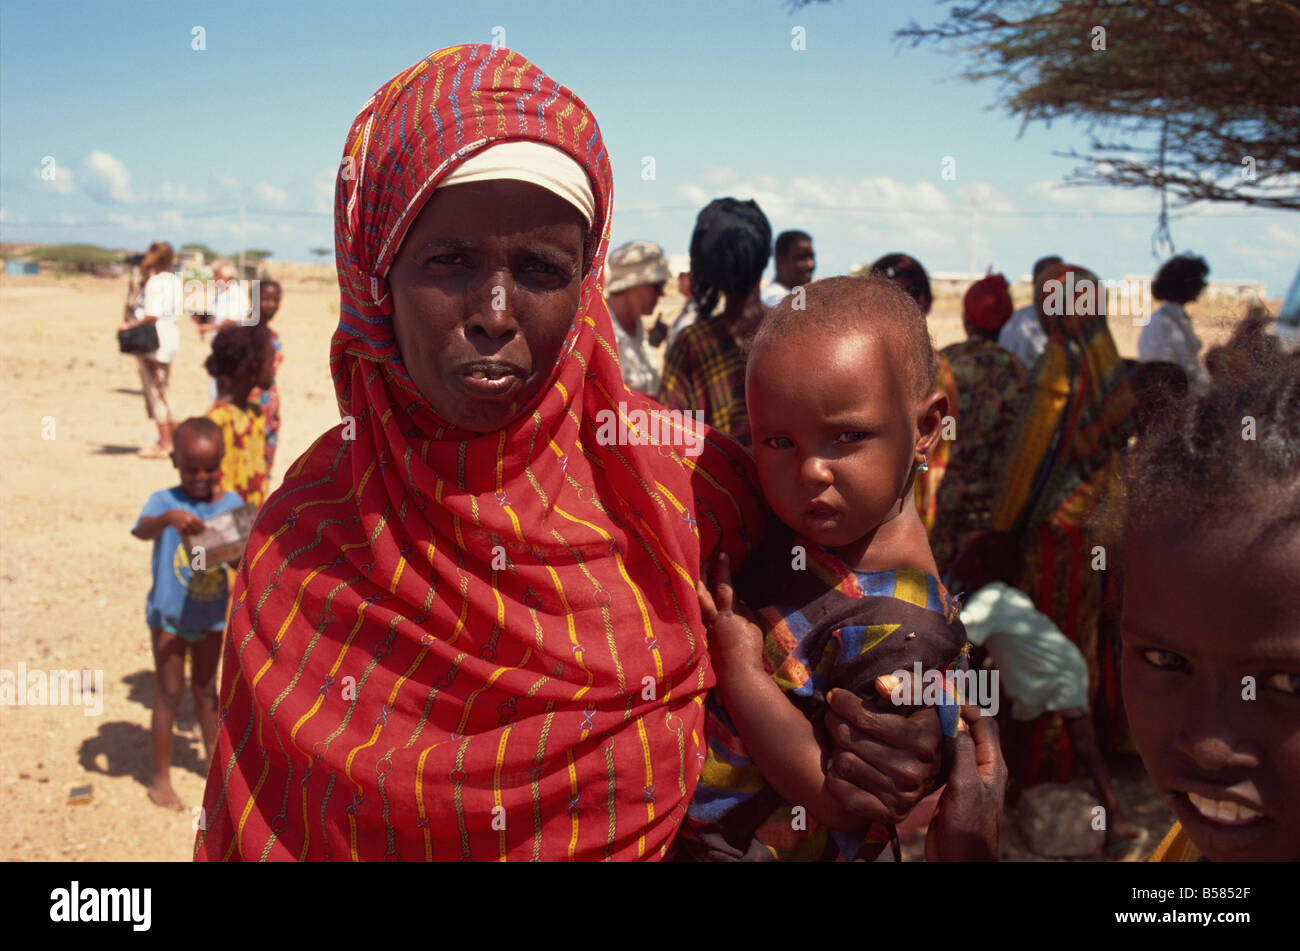 Woman with child Djibouti Africa - Stock Image